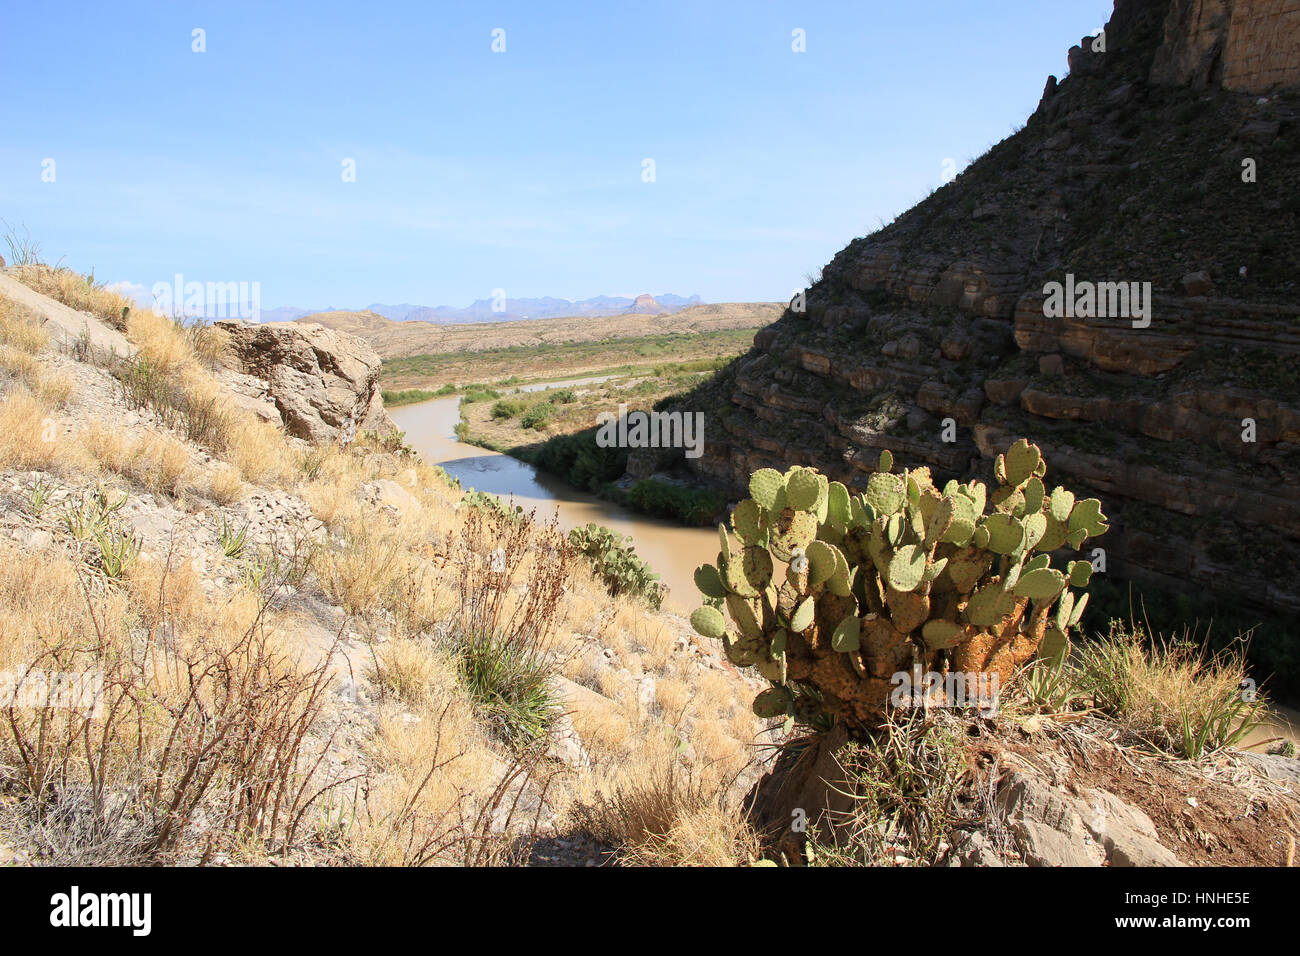 Cactuses clings to the rocky ground in Santa Elena Canyon, above the Rio Grande, which marks the Mexican Border, - Stock Image